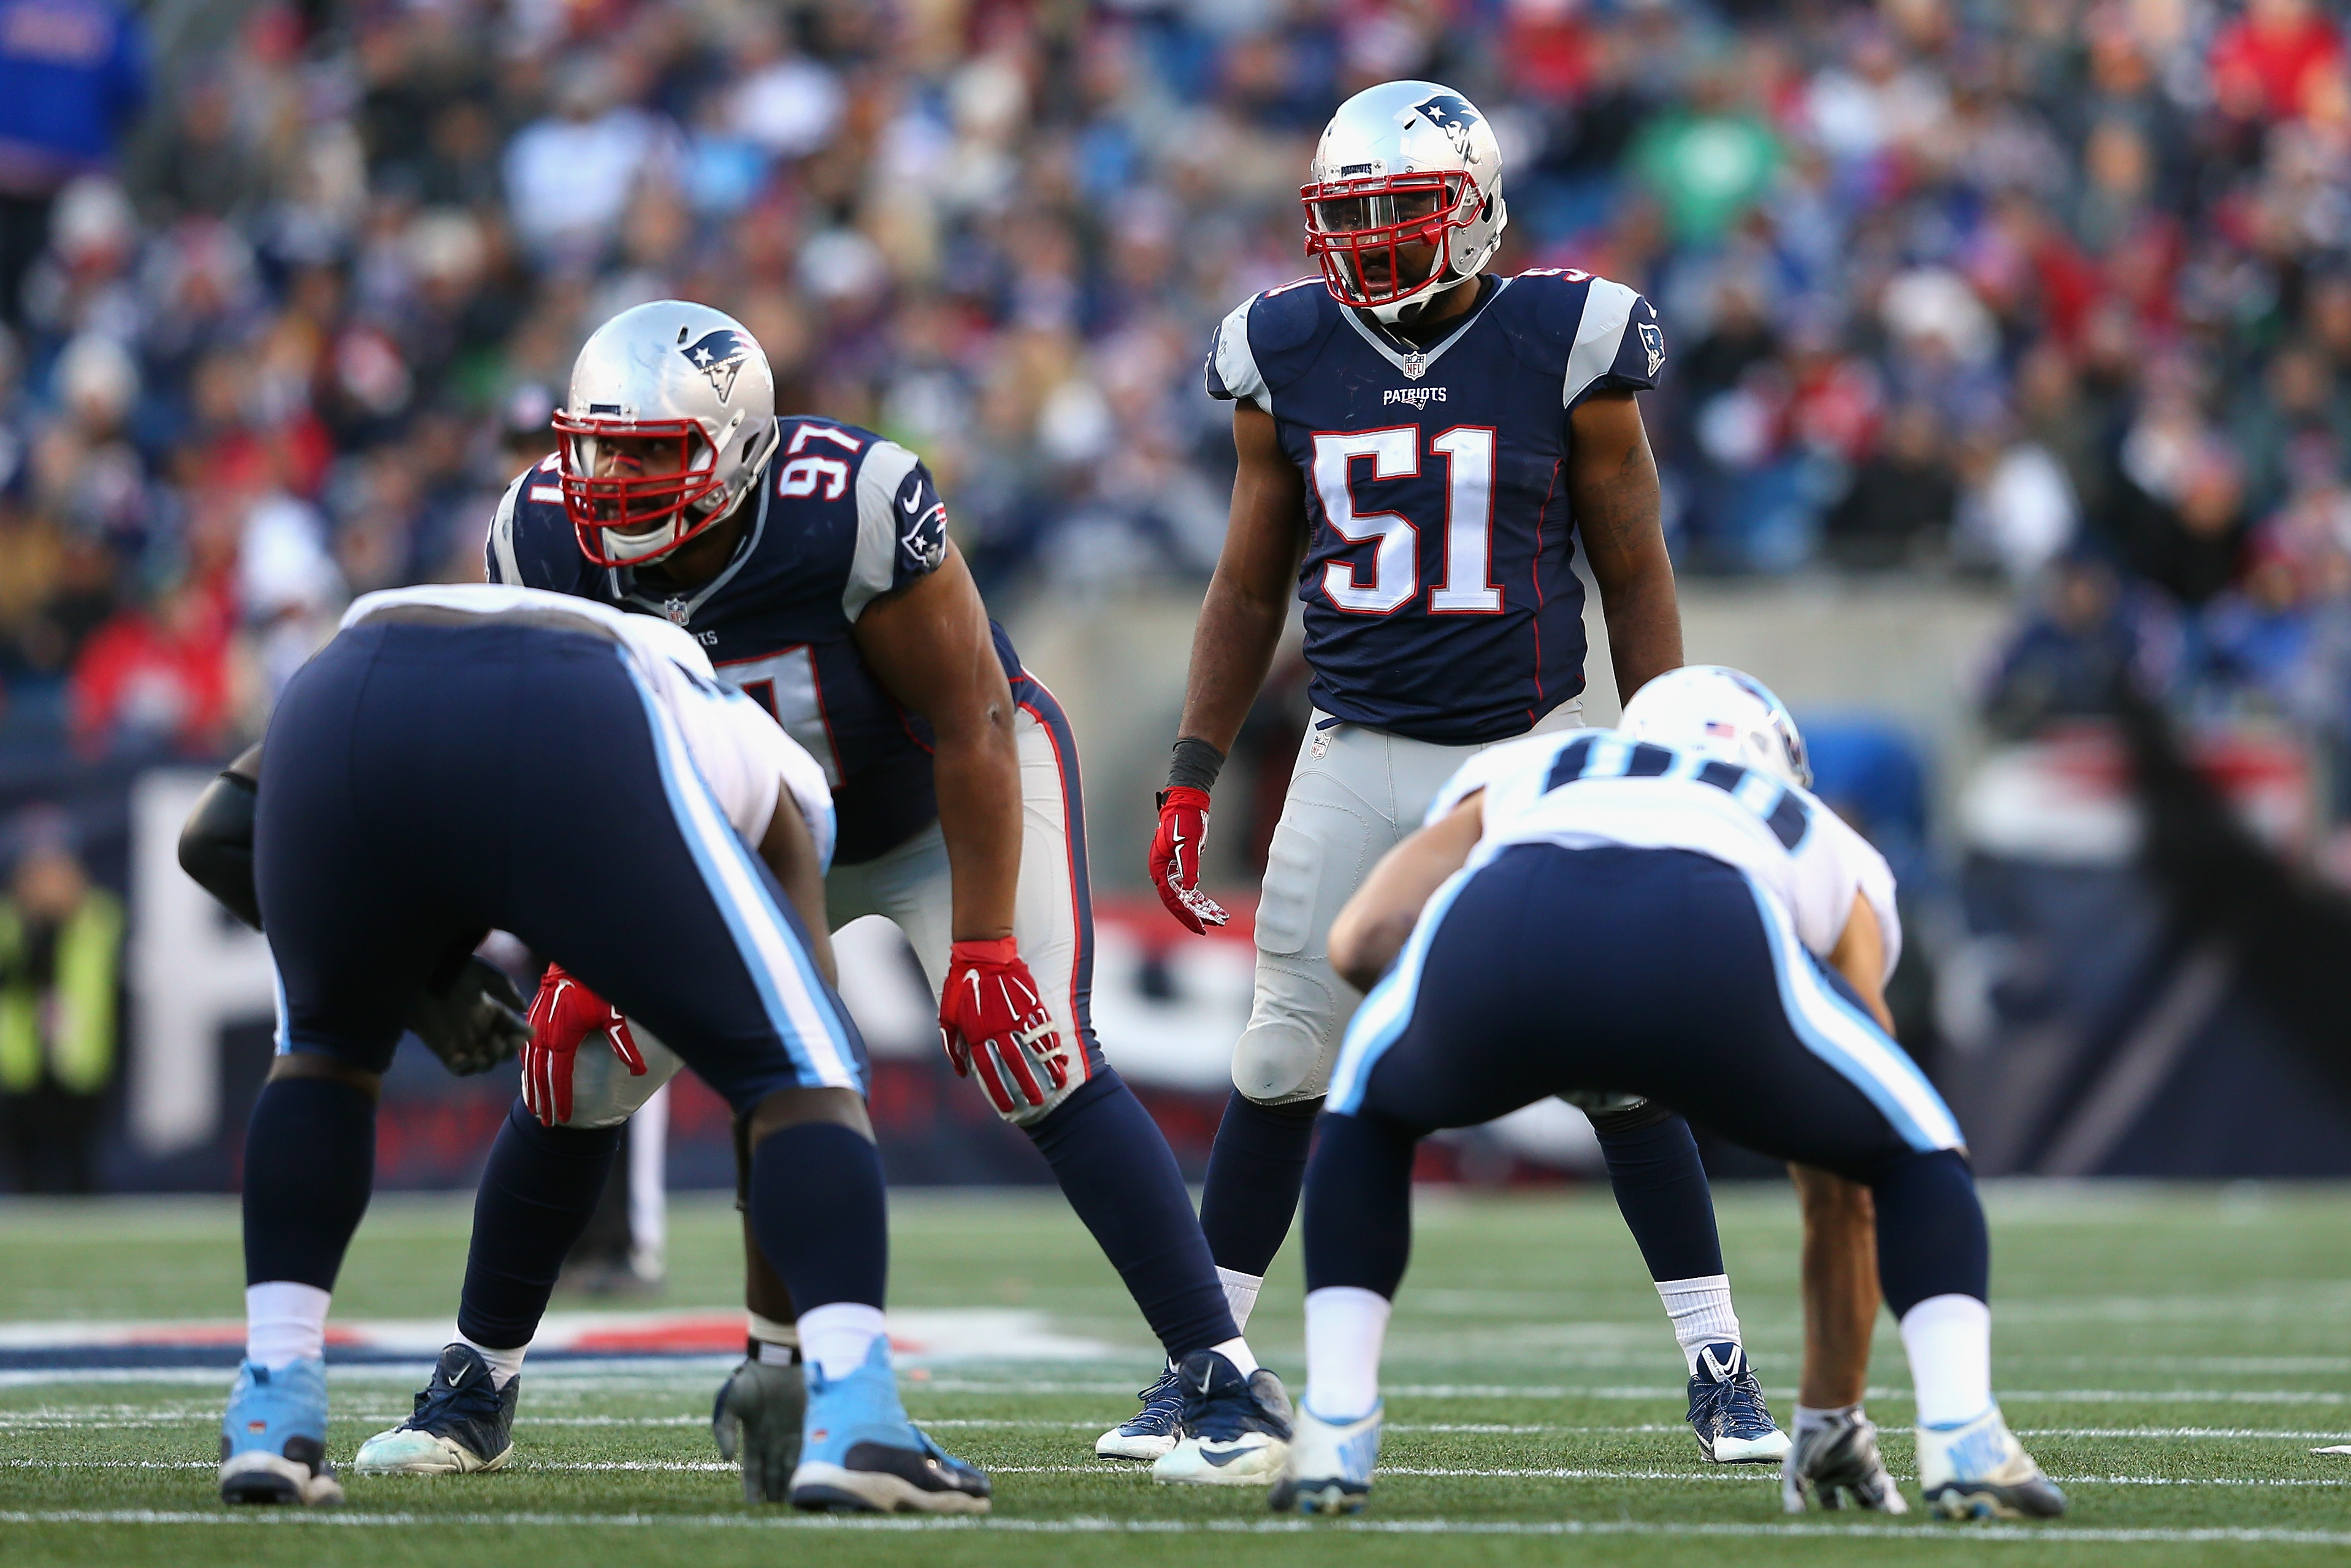 Jerod Mayo emerging as candidate to call defensive plays among